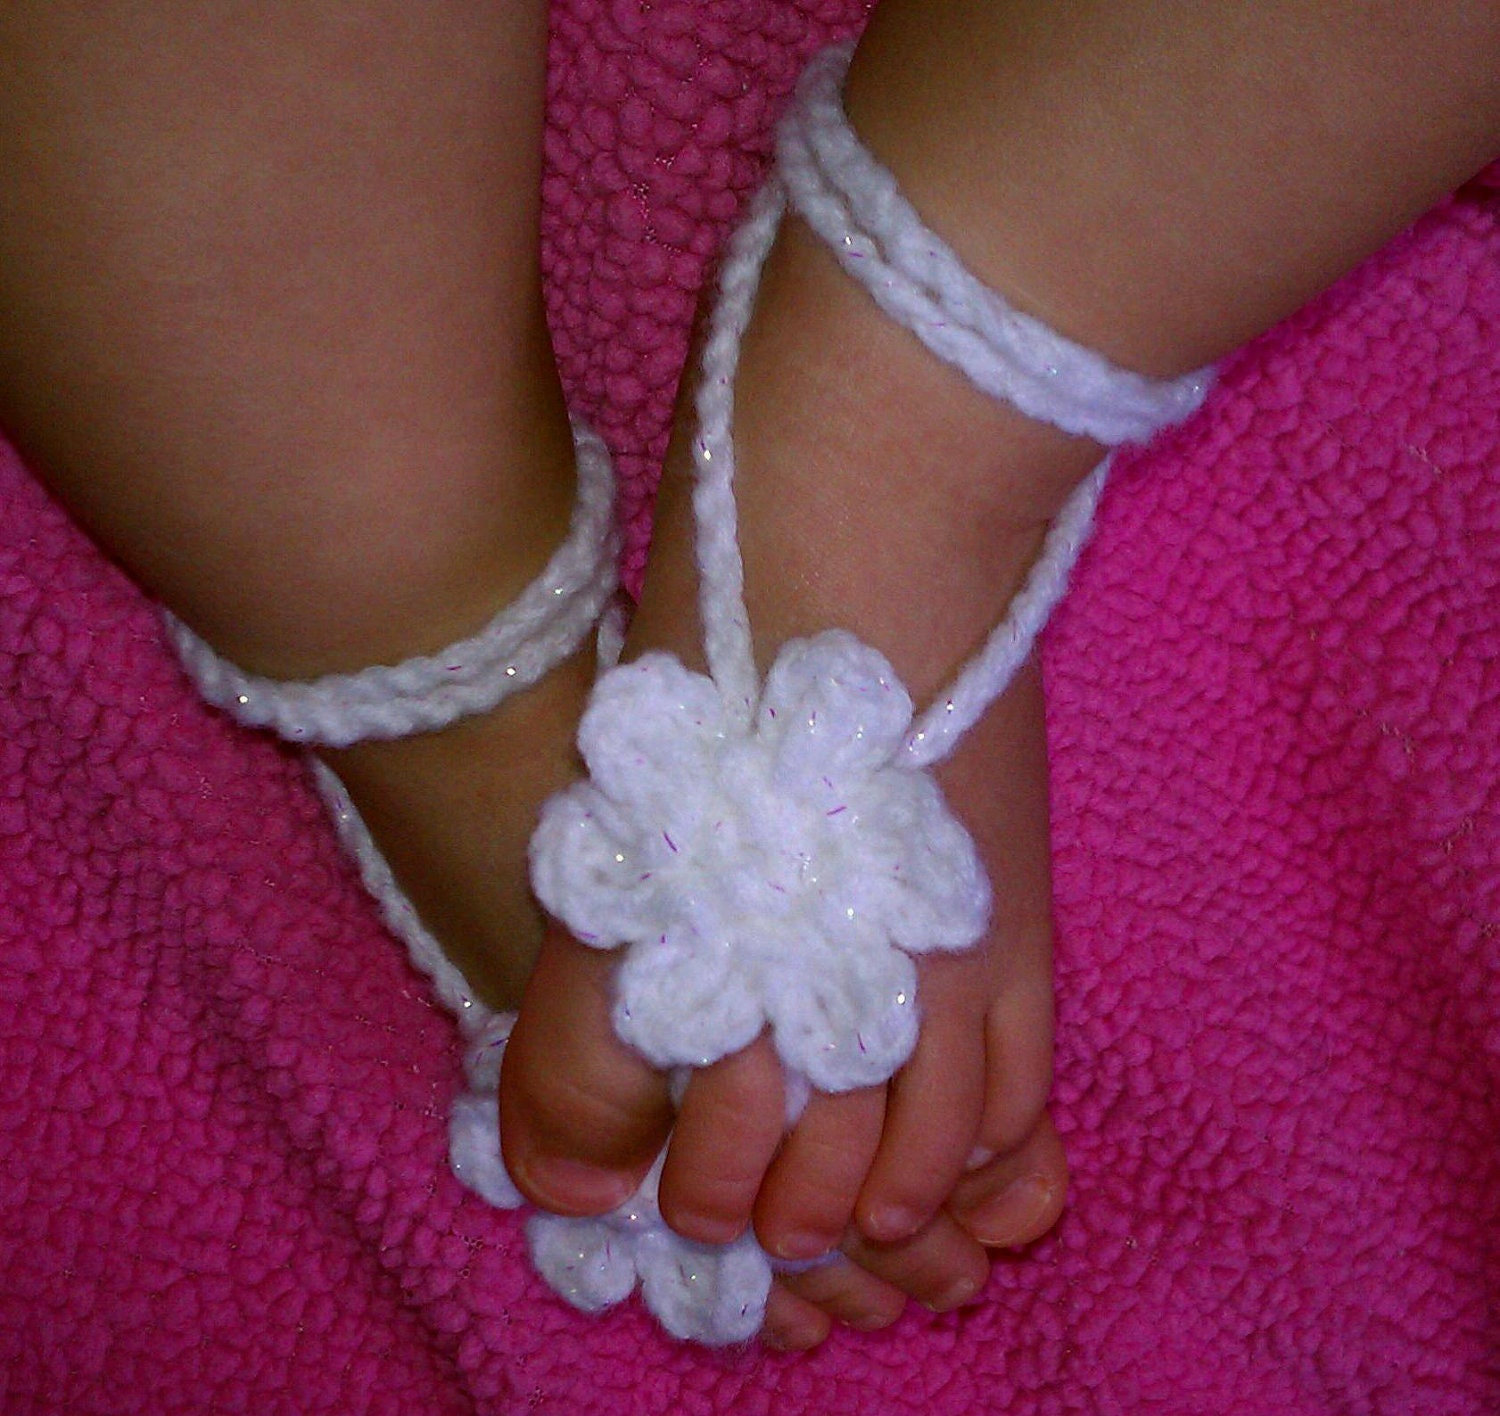 Crochet Pattern For Baby Barefoot Sandals : baby crochet barefoot sandals photography prop PDF by Kilegna